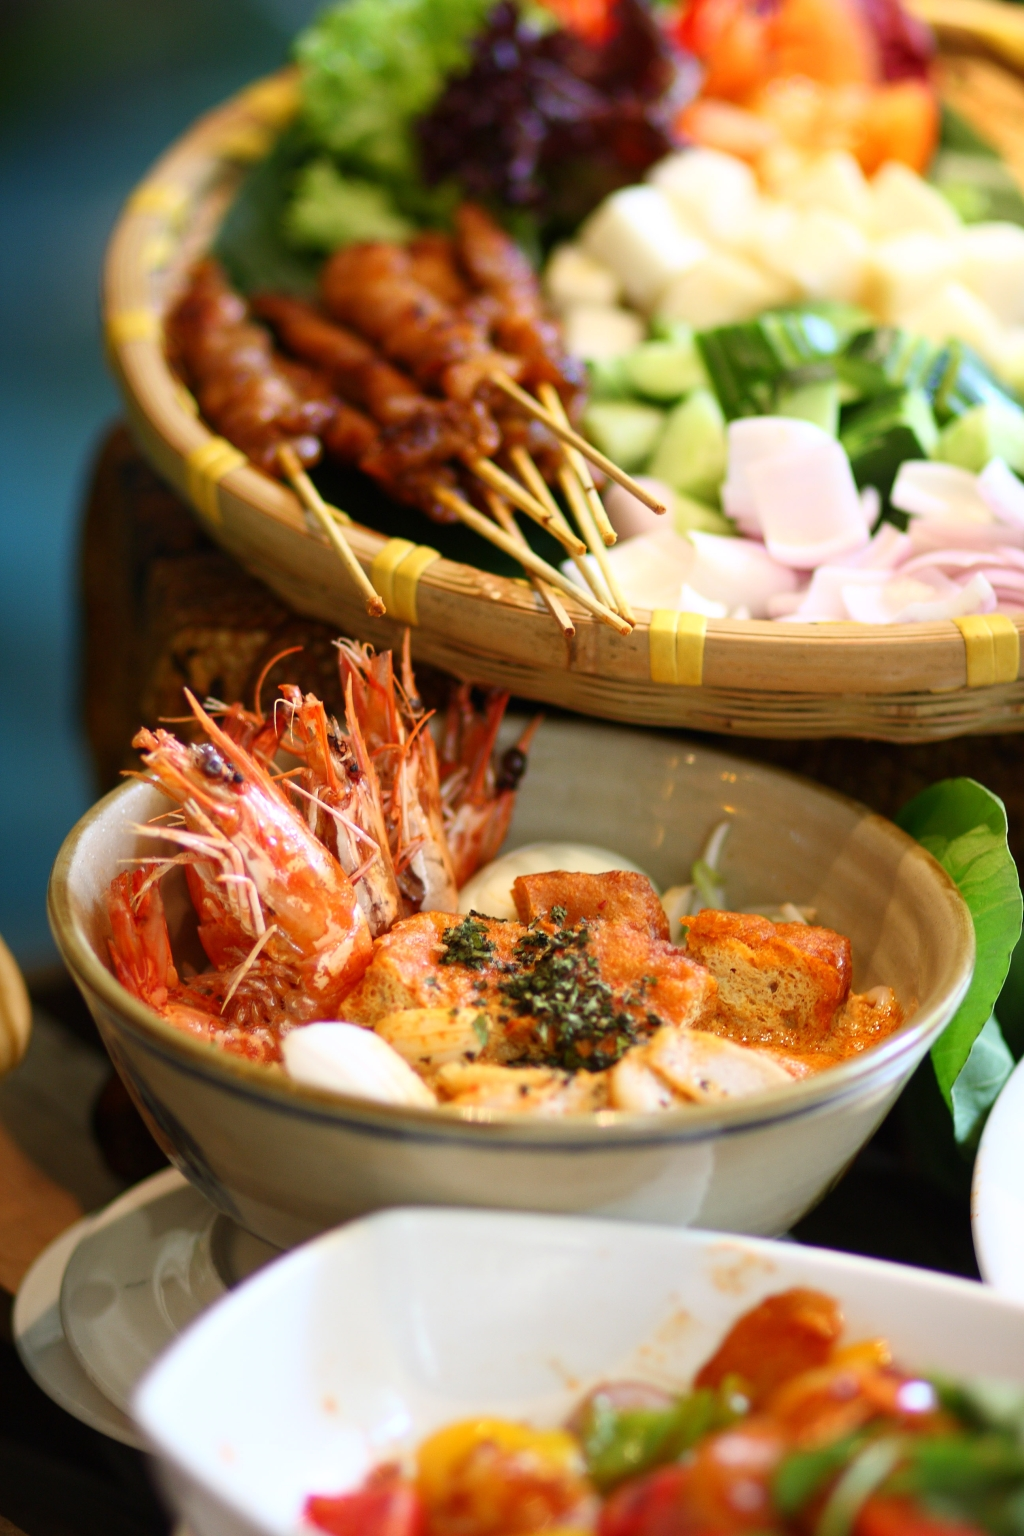 Delightful local food at Orchard Hotel